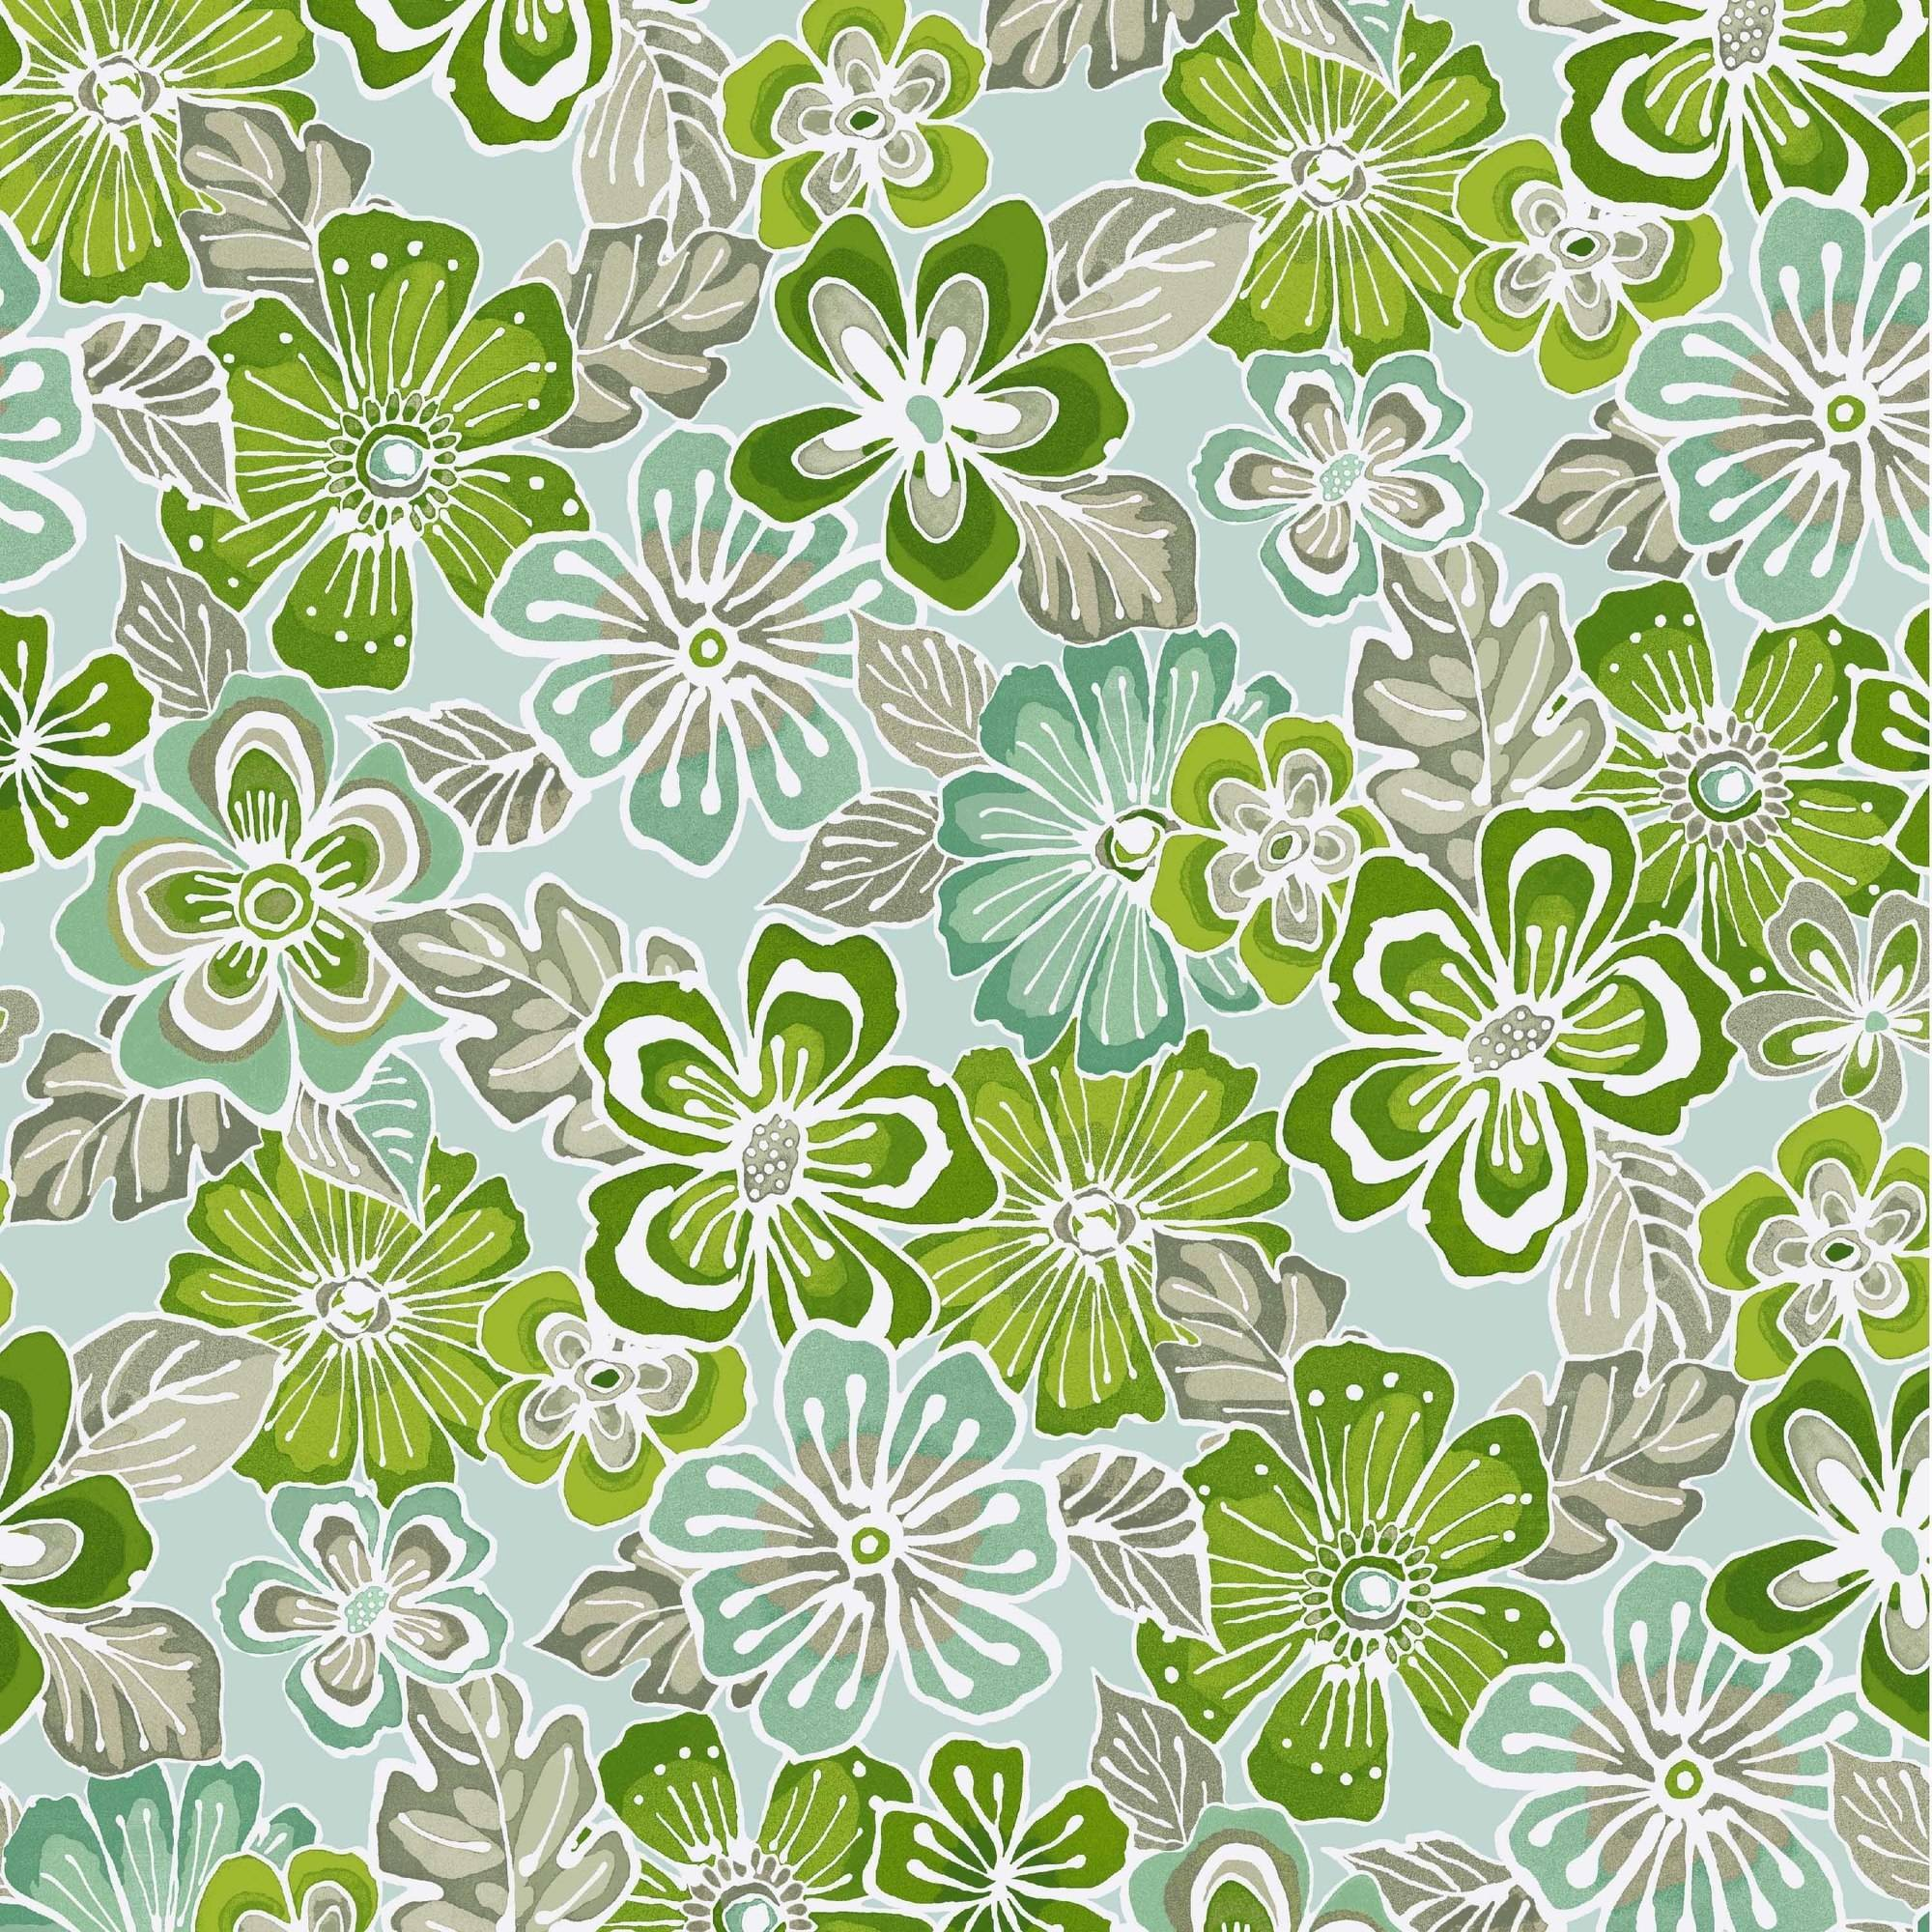 Waverly Inspirations POP Flower Lime 100% Cotton Duck Fabric 45'' Wide, 180 Gsm, Quilt Crafts Cut By The Yard